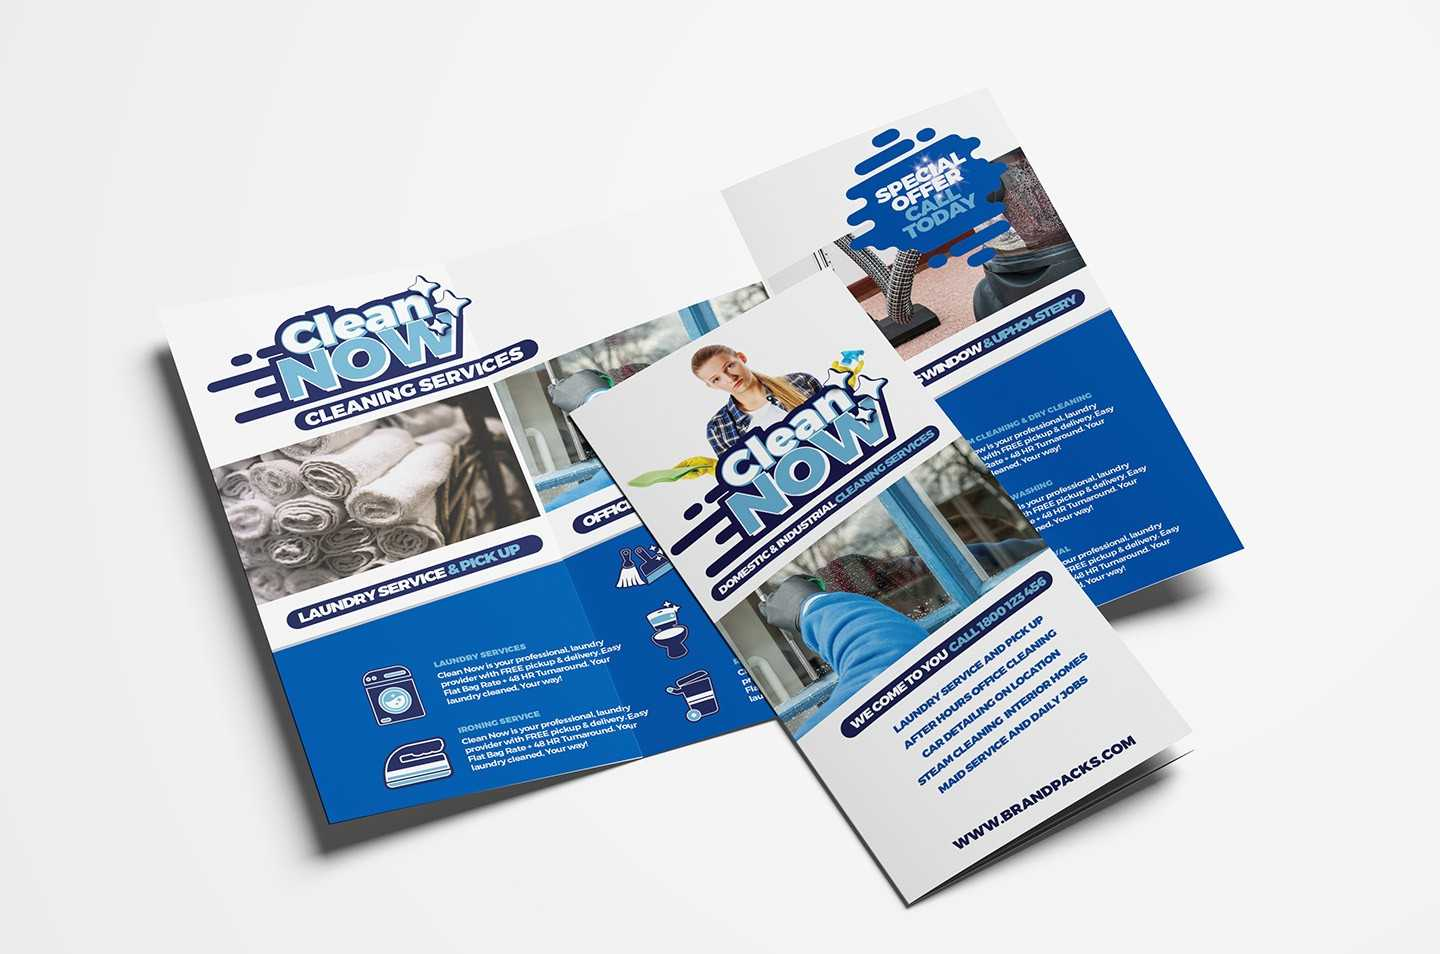 Cleaning Service Trifold Brochure Template In Psd, Ai Throughout Cleaning Brochure Templates Free